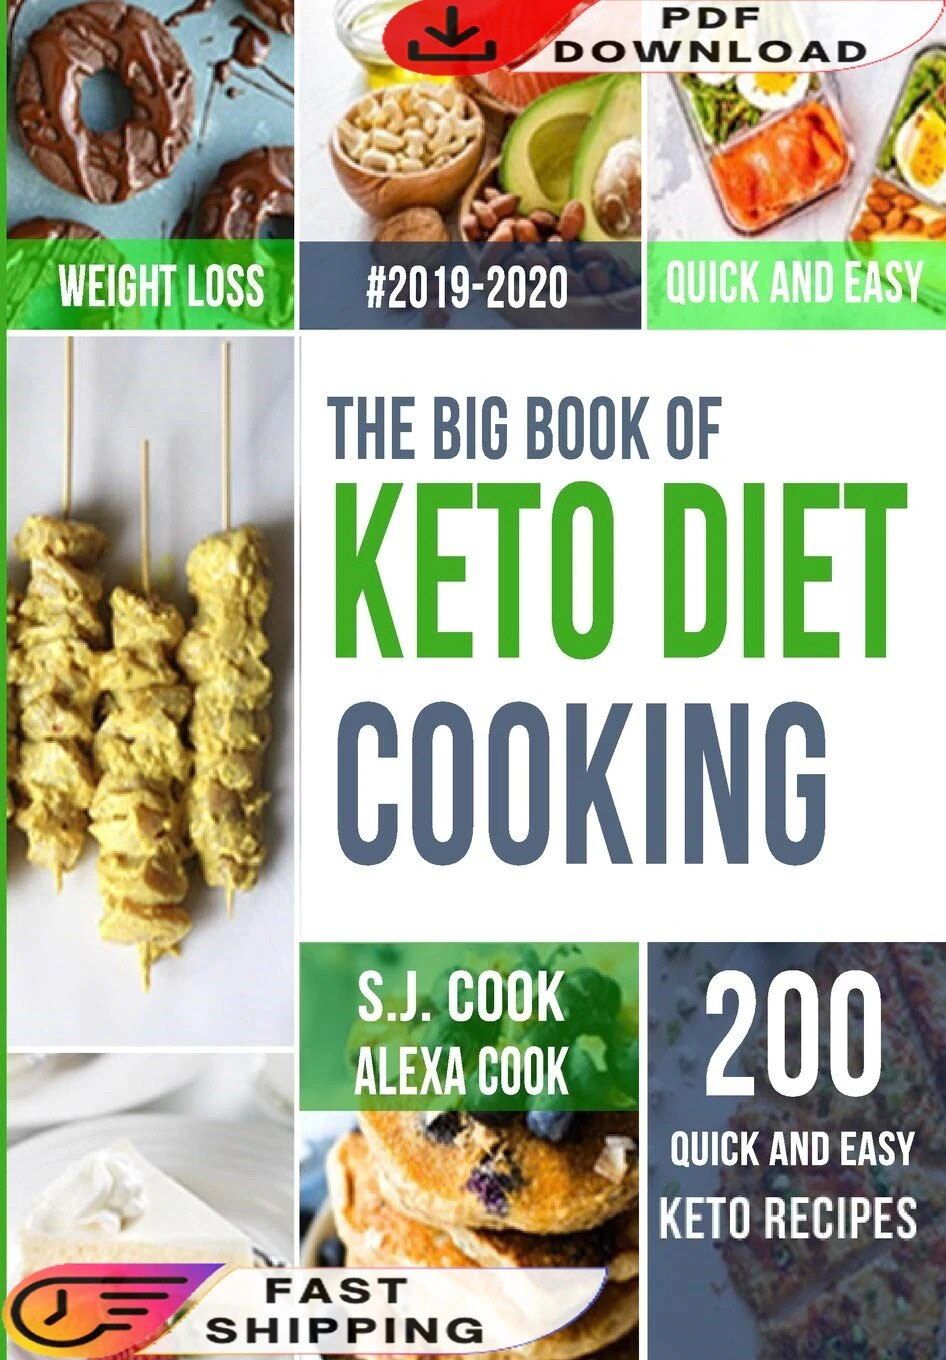 The Big Book of Keto Diet Cooking E-book (Digital Delivery)